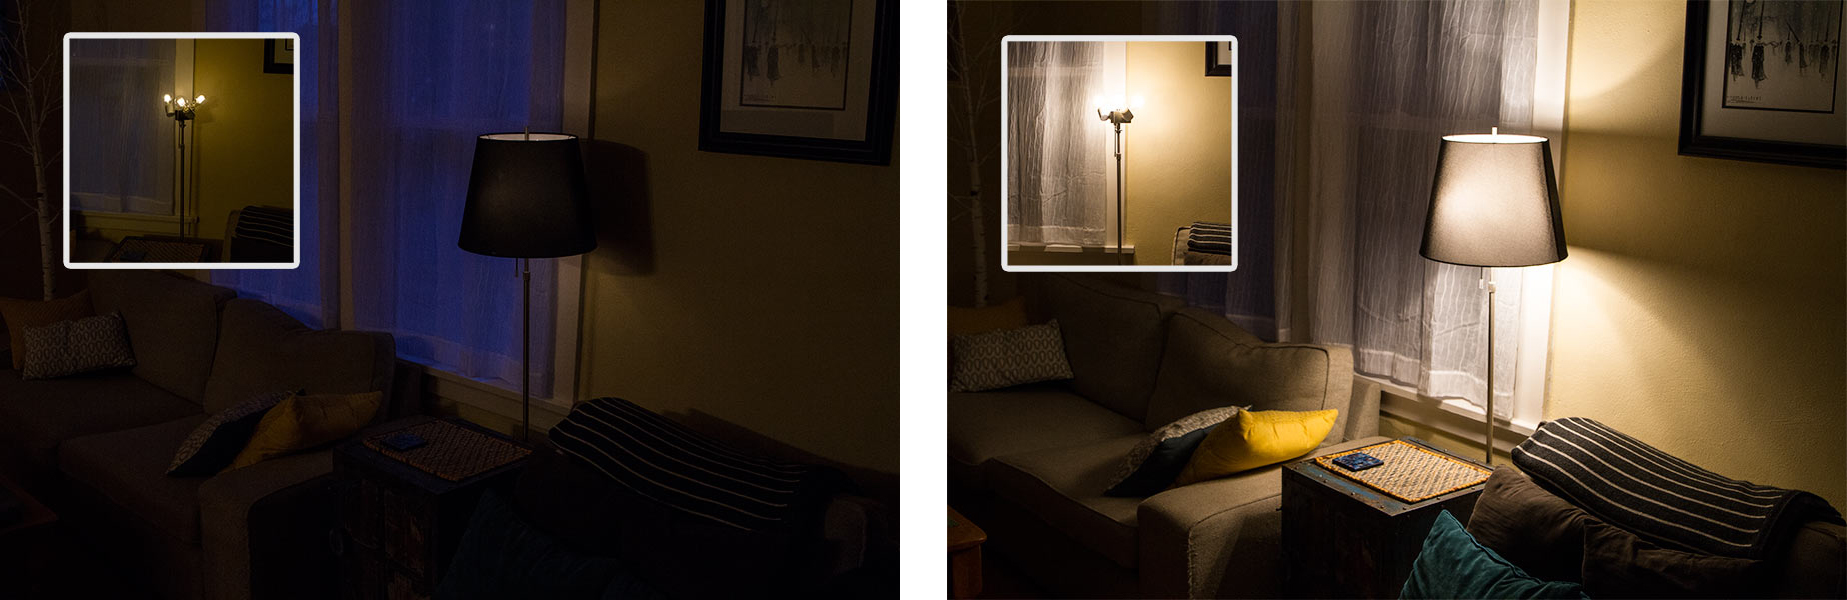 how to light a room with LED lights - dimmable LED lights